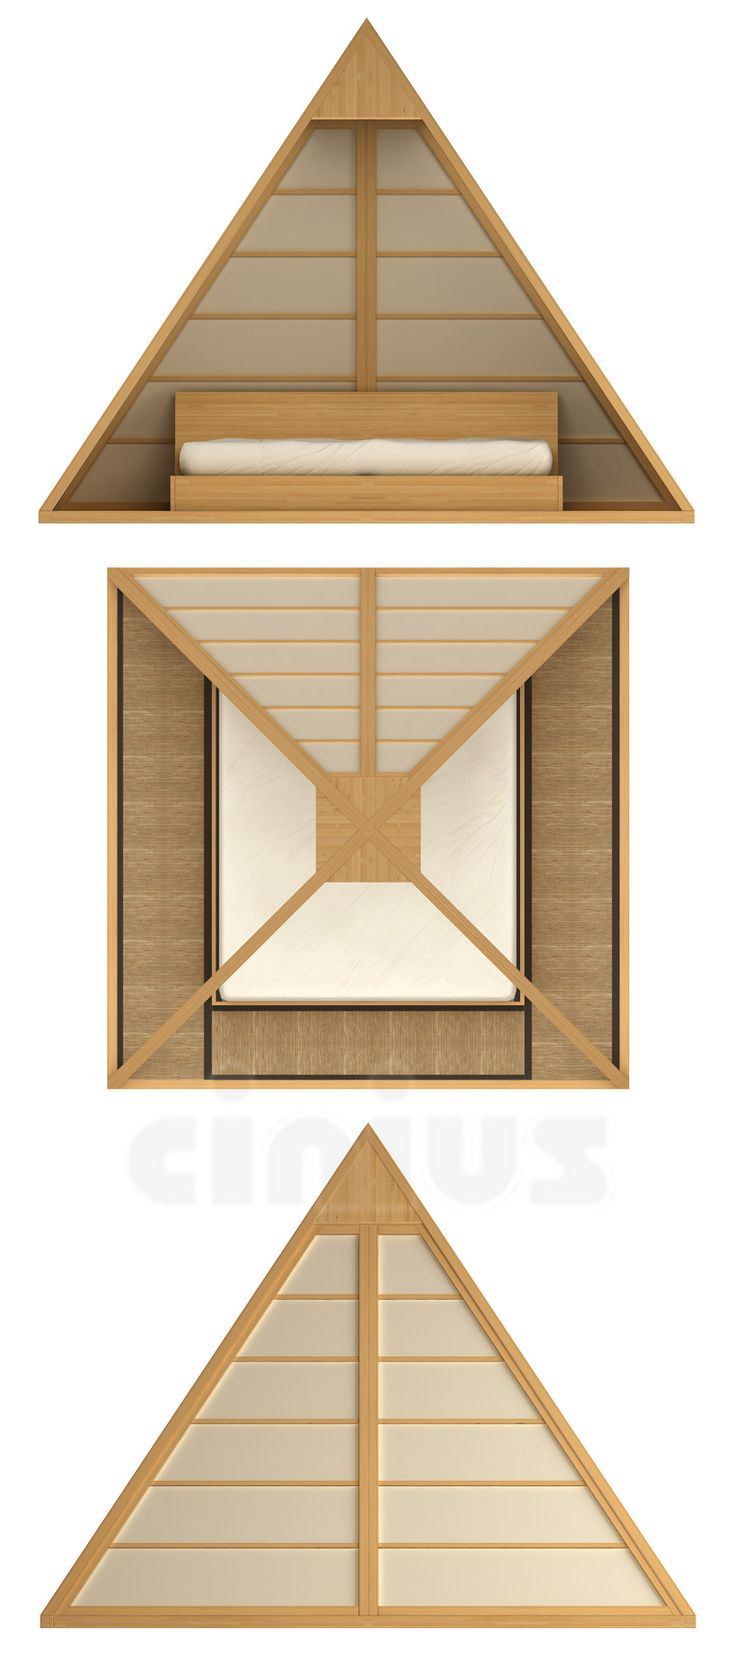 [Letto Cheope] Con un inedito richiamo al mistero delle Piramidi, la struttura mostra un design rigorosamente geometrico. Il giroletto in Tatami, i pannelli Shoji e il punto-luce al vertice aumentano la maestosa eleganza del letto. (With an unprecedented reference to the mystery of the Pyramids, the structure shows a strict geometric design. The bed frame in Tatami, the Shoji panels and the light at the top increase the stately elegance of the bed.) #Cinius